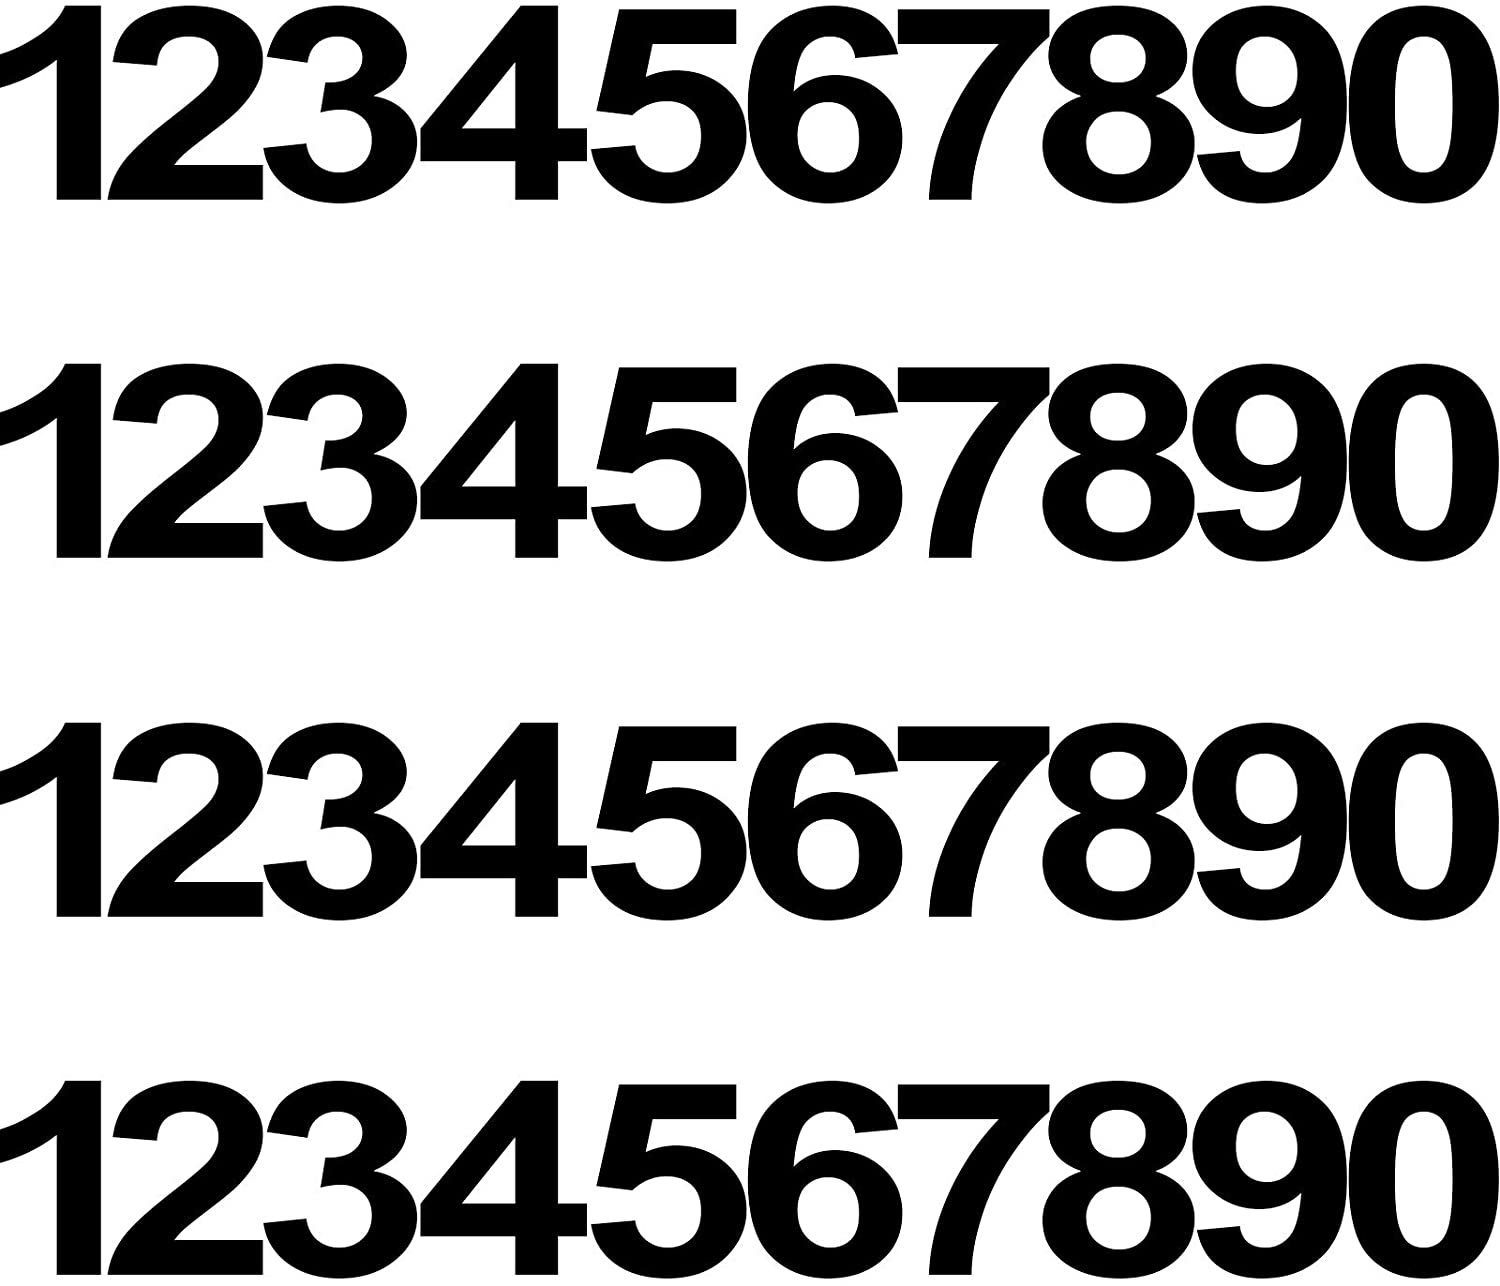 Superior 40 Pieces Bargain sale 4 Sets Vinyl Mailbox Waterproof Number Numbe Stickers